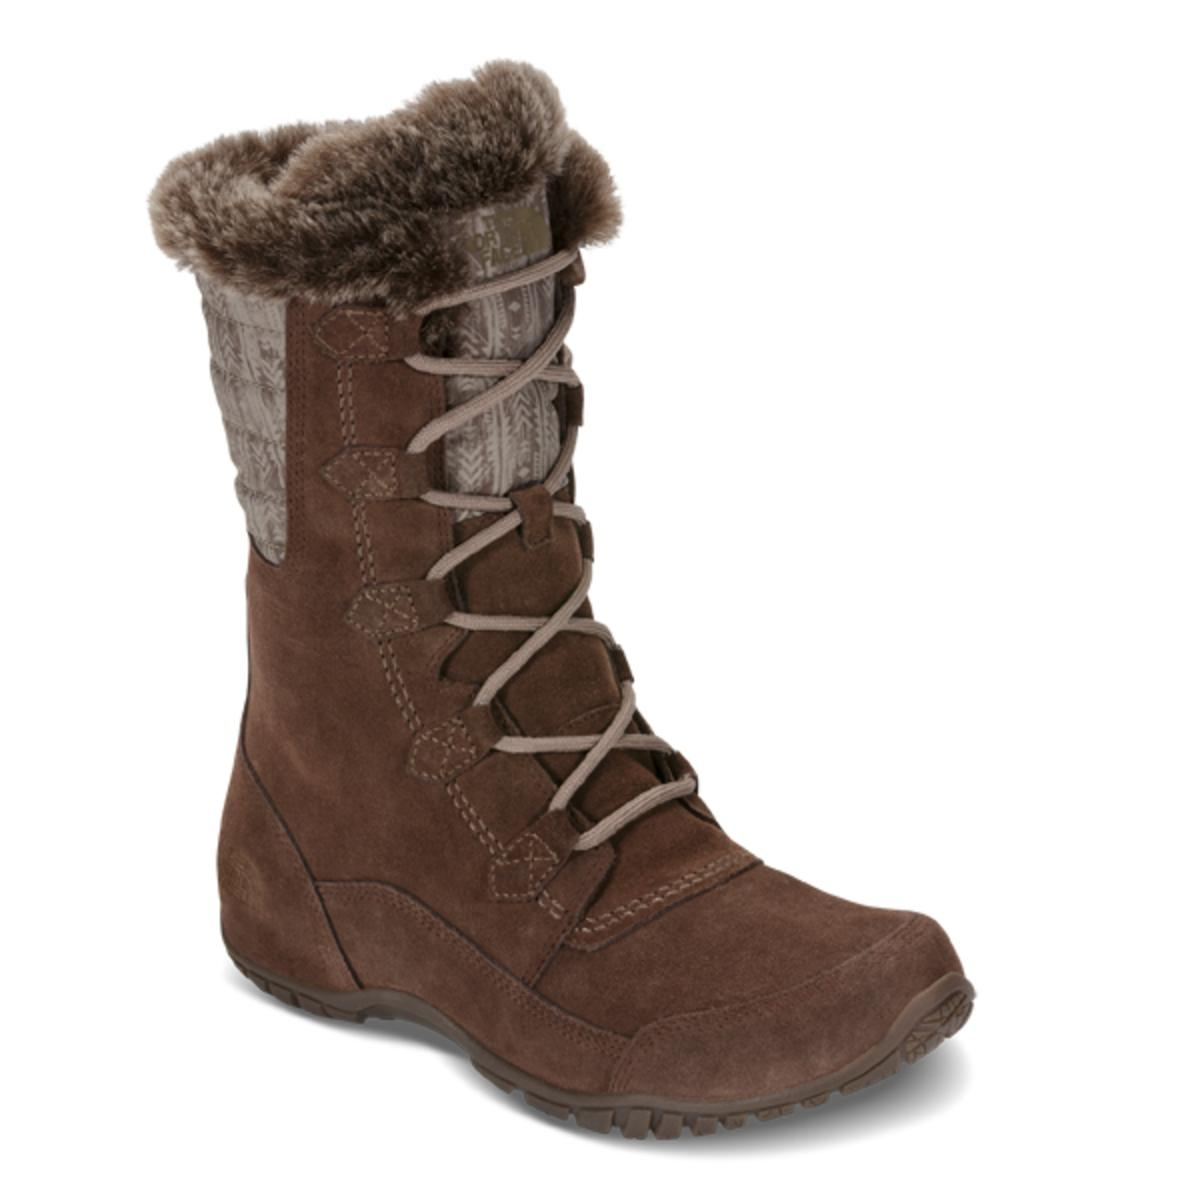 d72ec0558073 The North Face Women s Nuptse Purna II Boot - The Warming Store